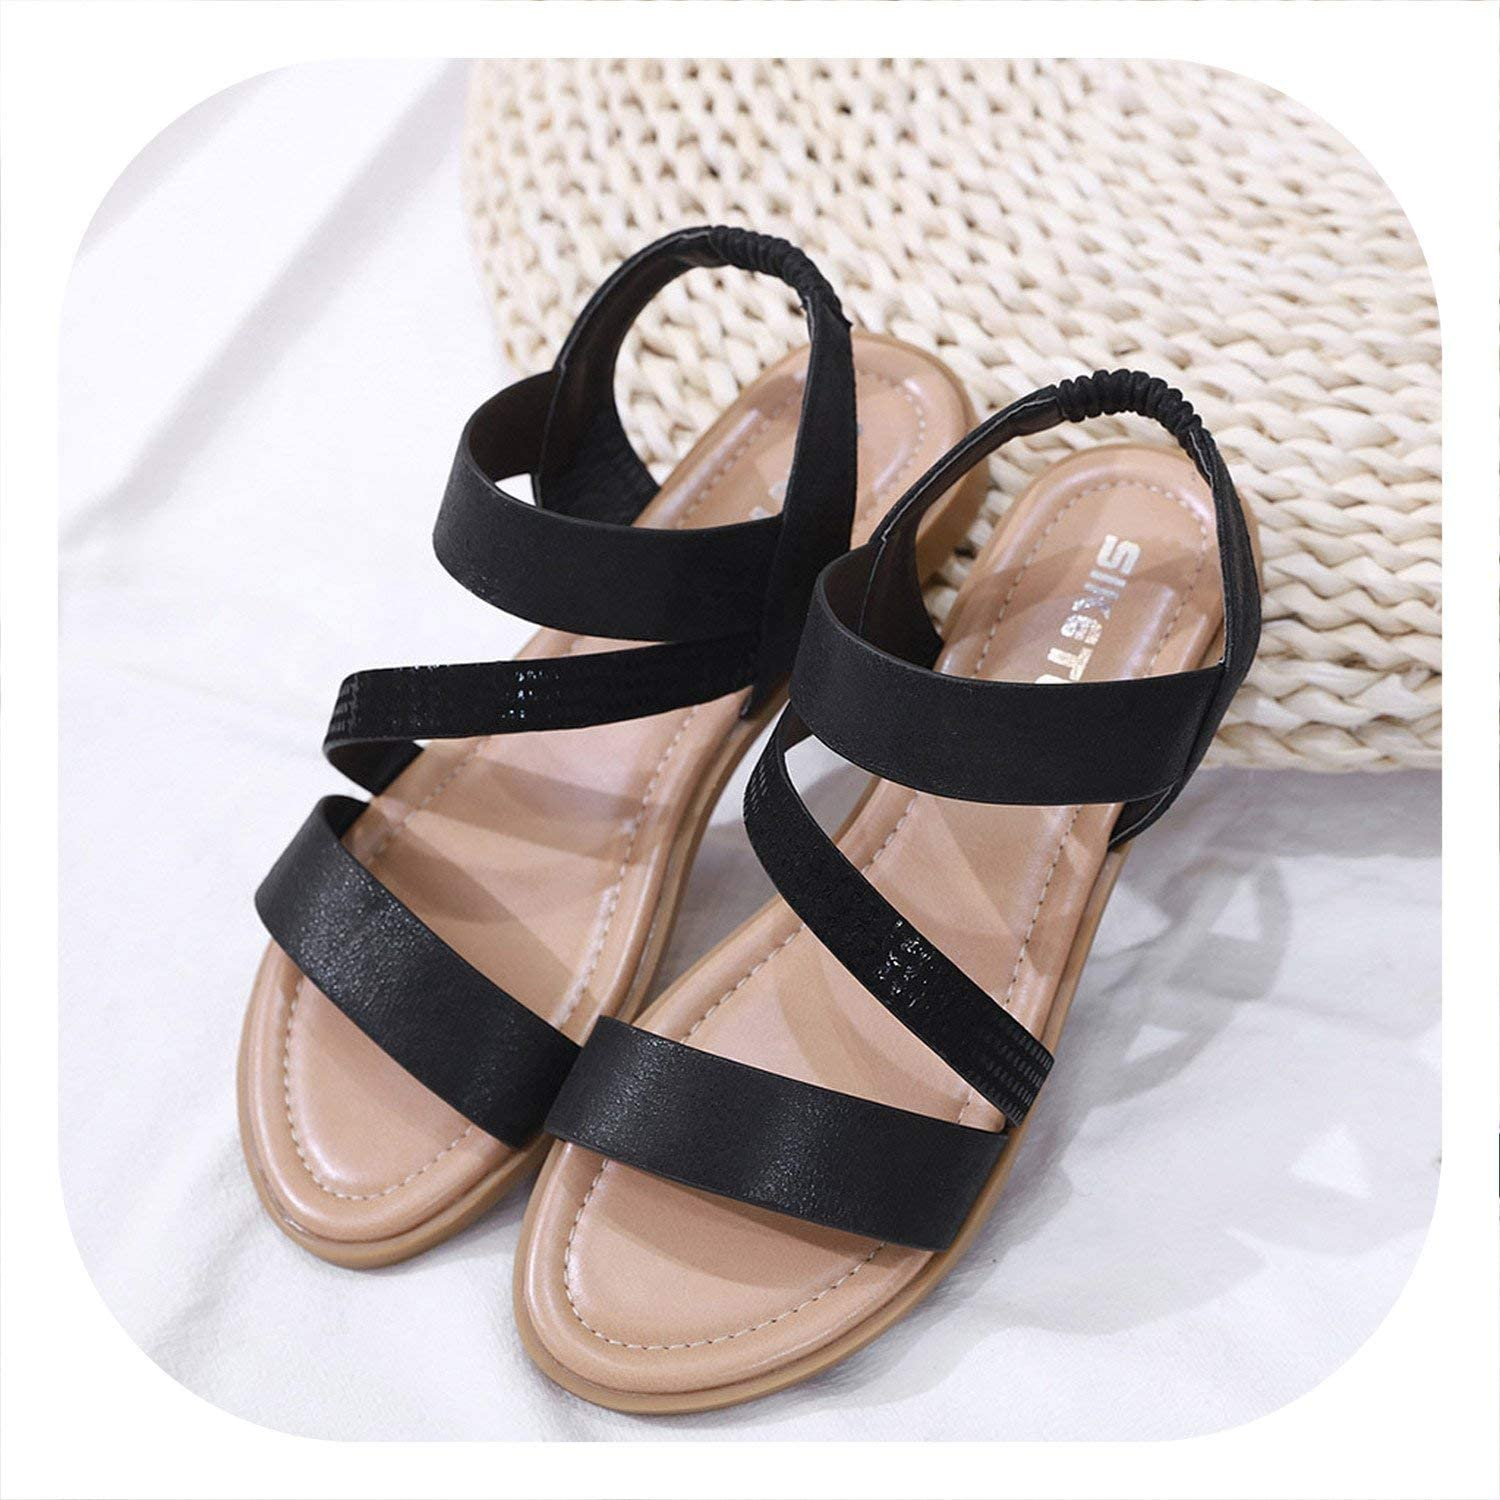 Coolemon 2019 Women Flat Sandals shoes Women Woven Wedge Sandals shoes Ladies Beach Summer Slingback Sandals Flipflops shoes  30